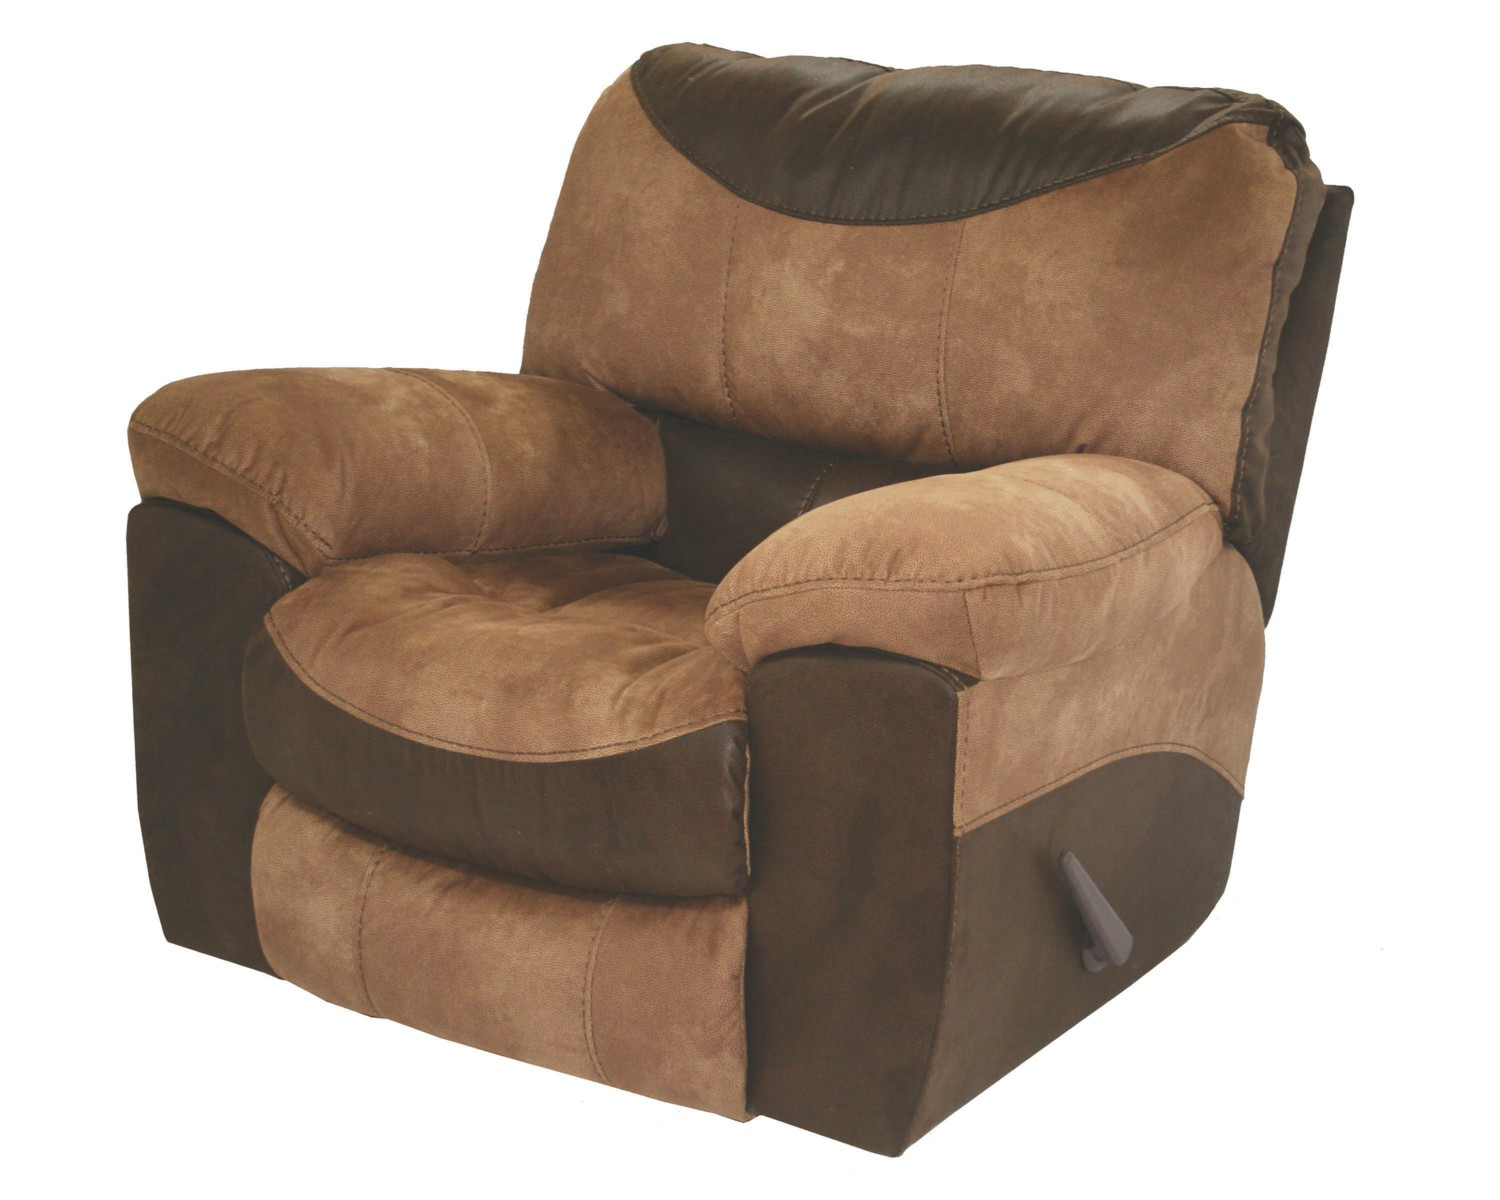 Catnapper portman chaise rocker recliner in saddle 1960 2 for Catnapper cloud nine chaise recliner